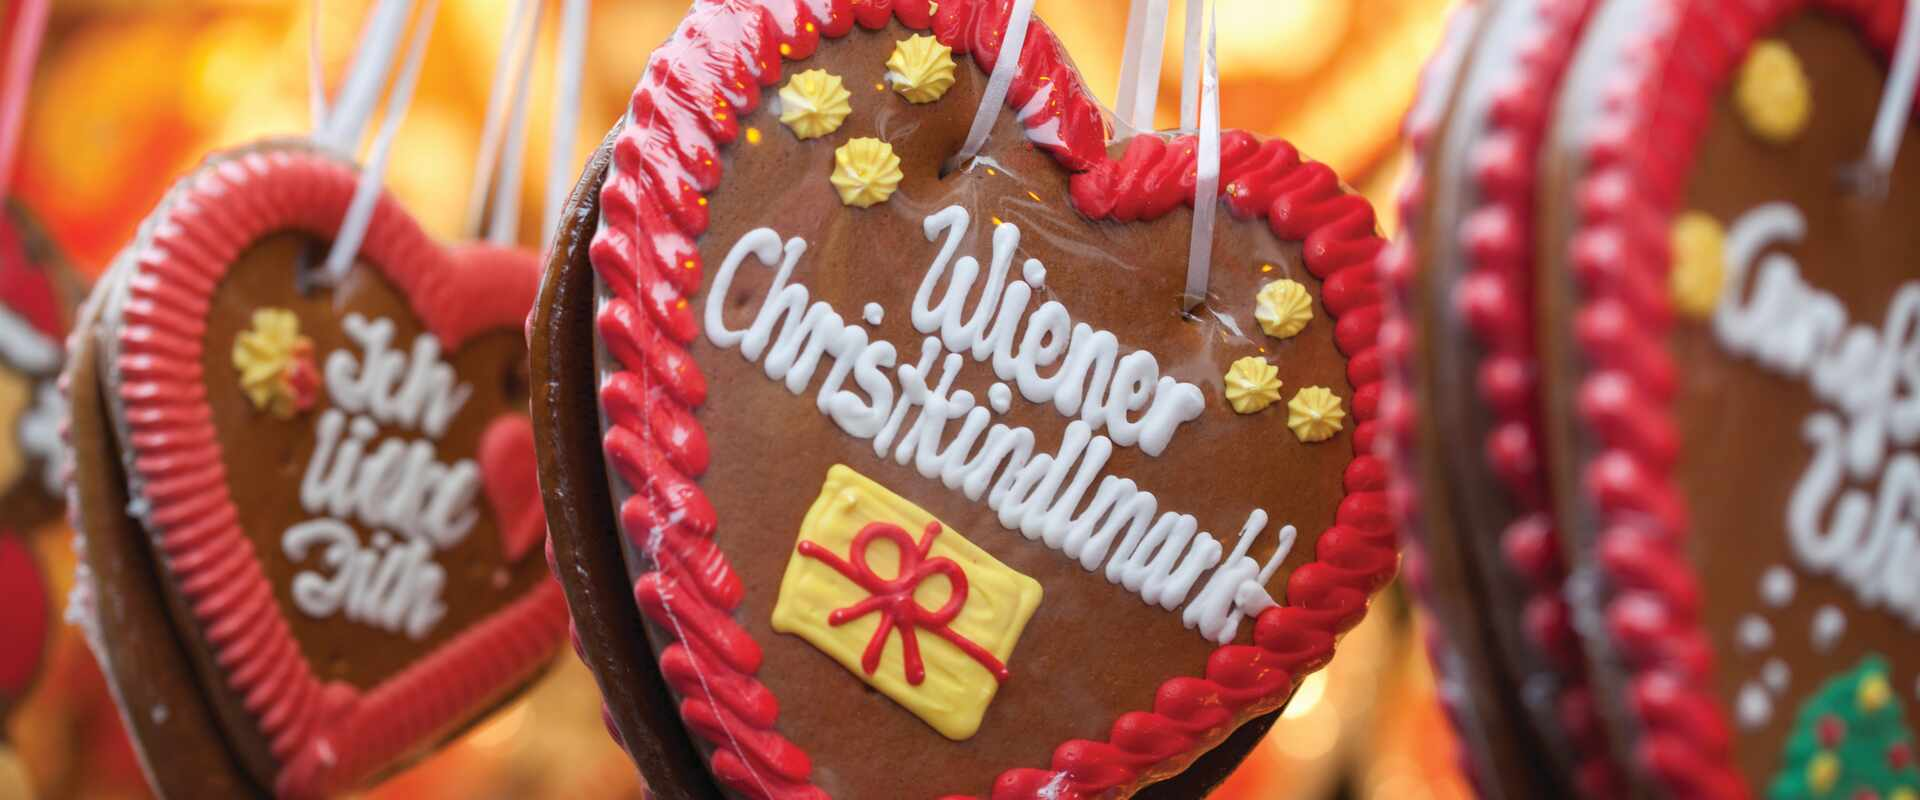 Ginger bread ornaments at Christmas market in Vienna, Austria